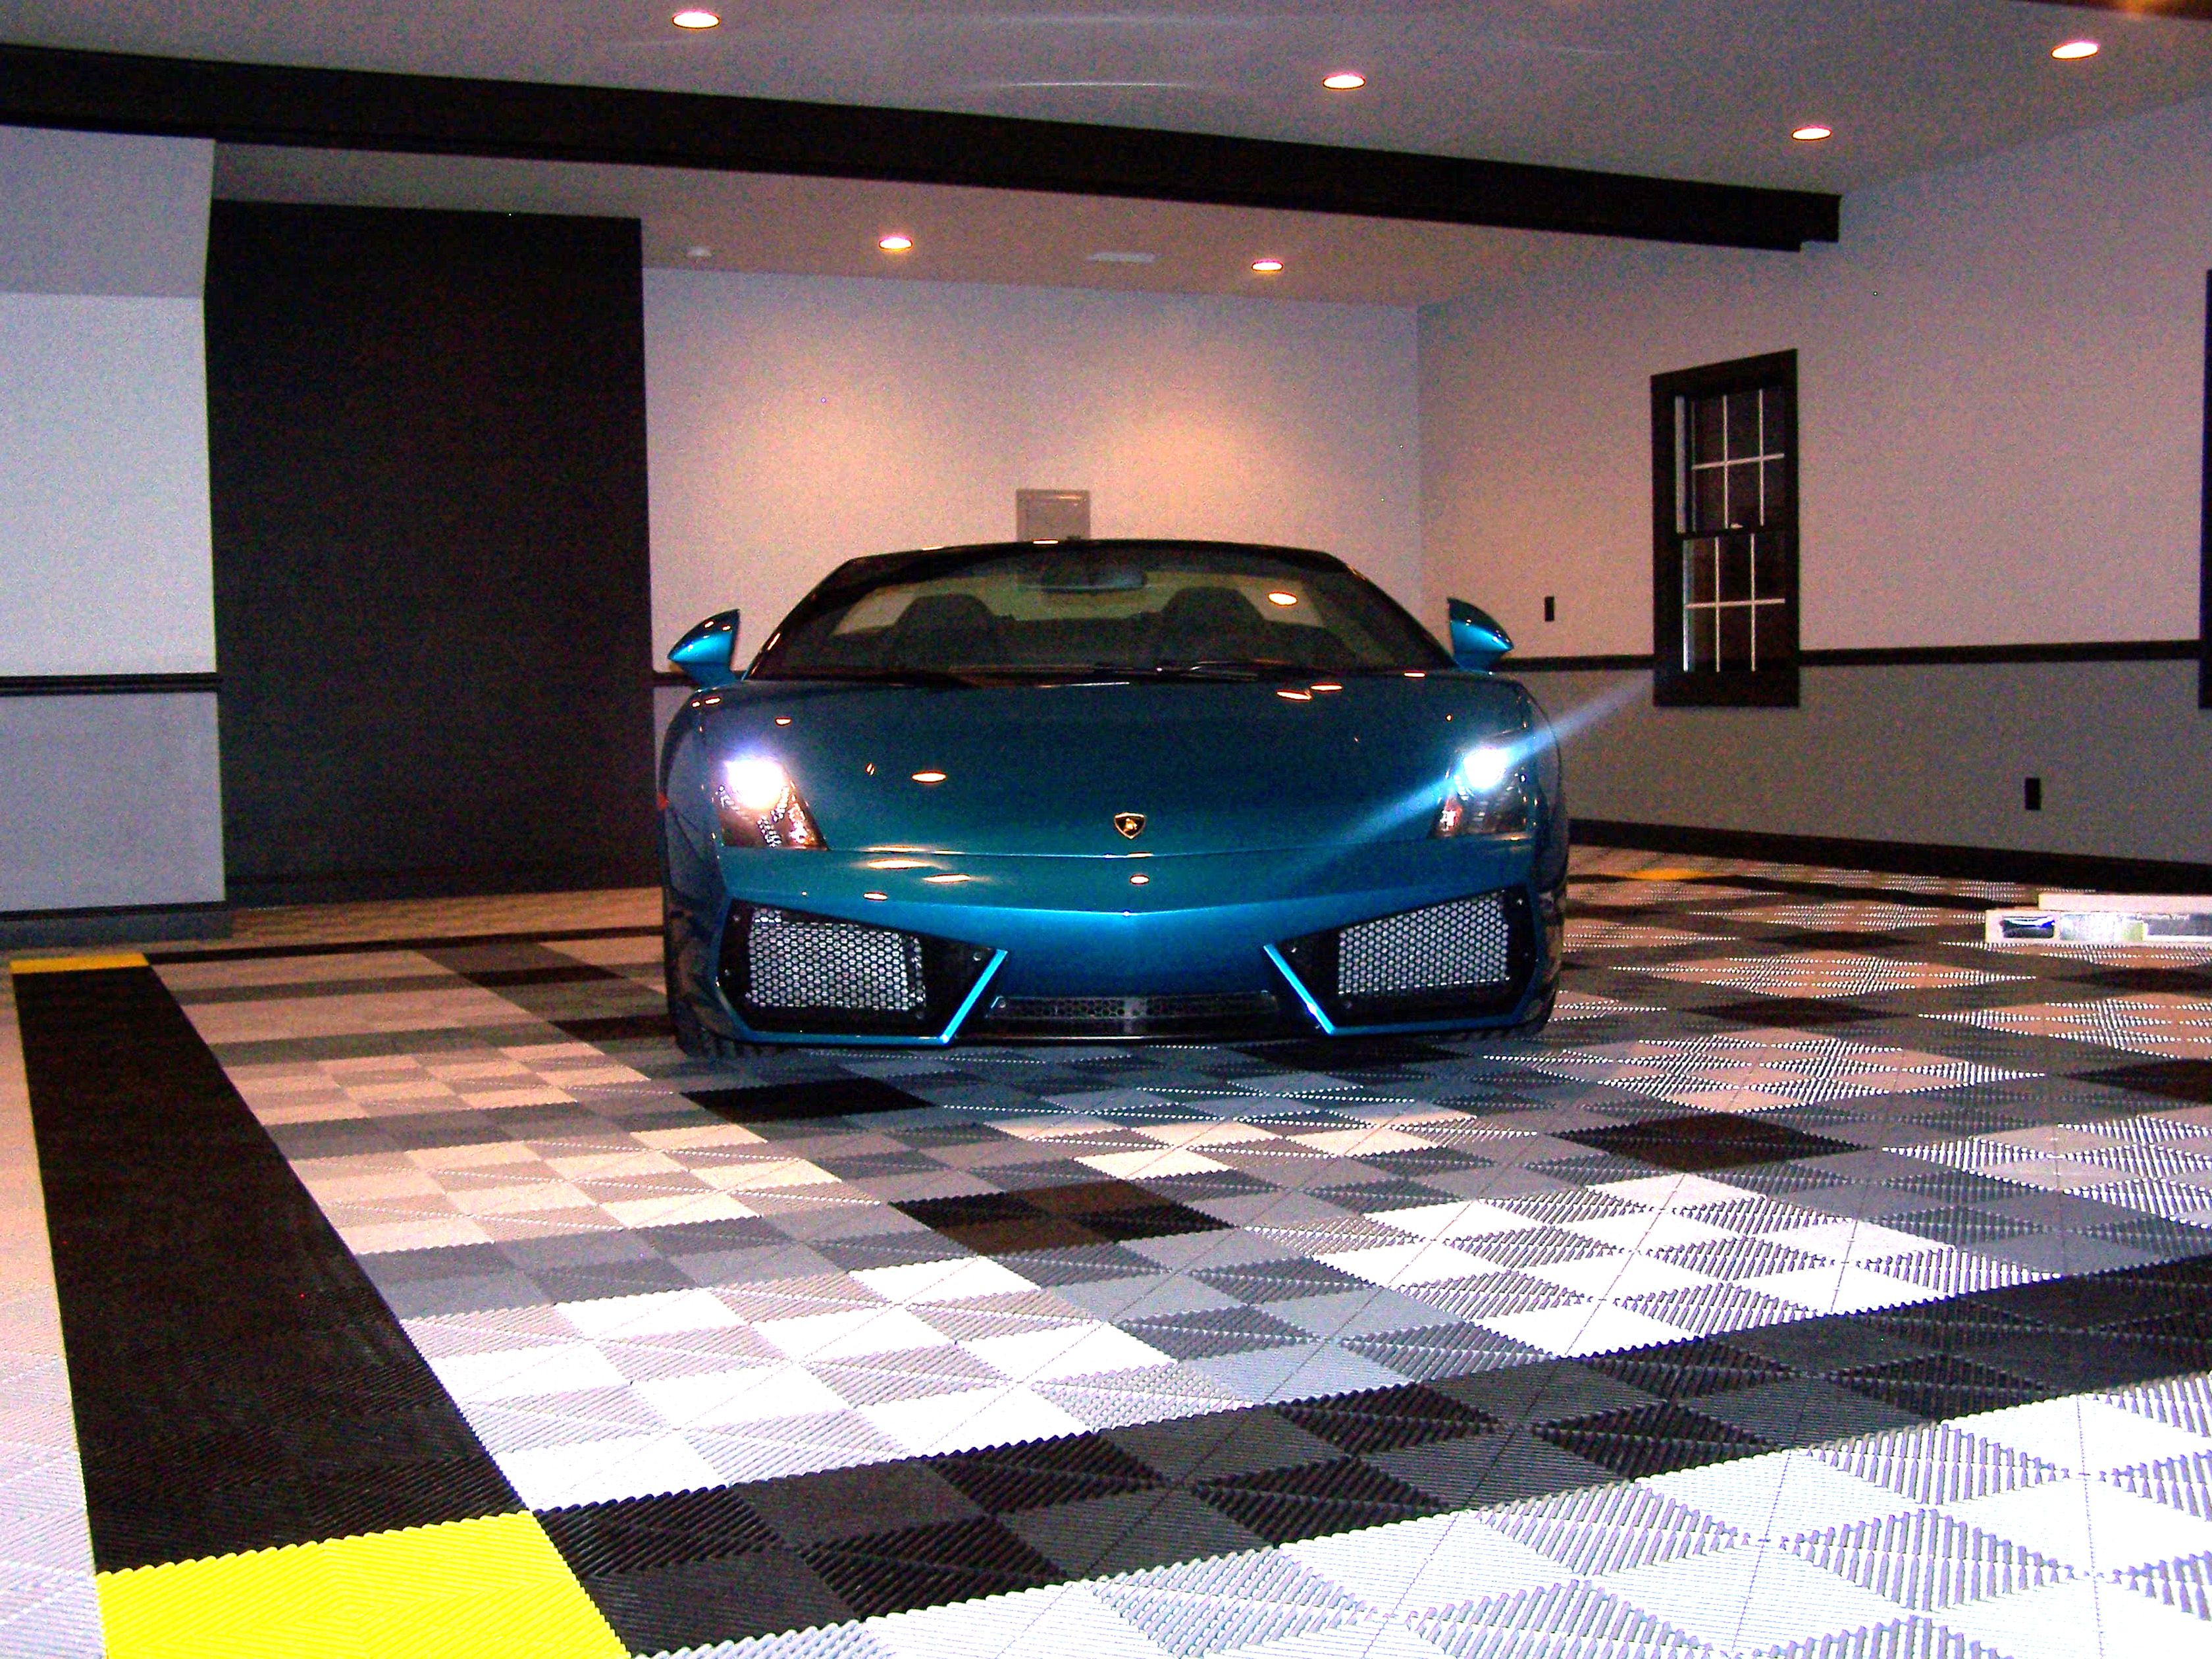 What All The Cool Kids Have Swisstrax Garage With Lamborghini